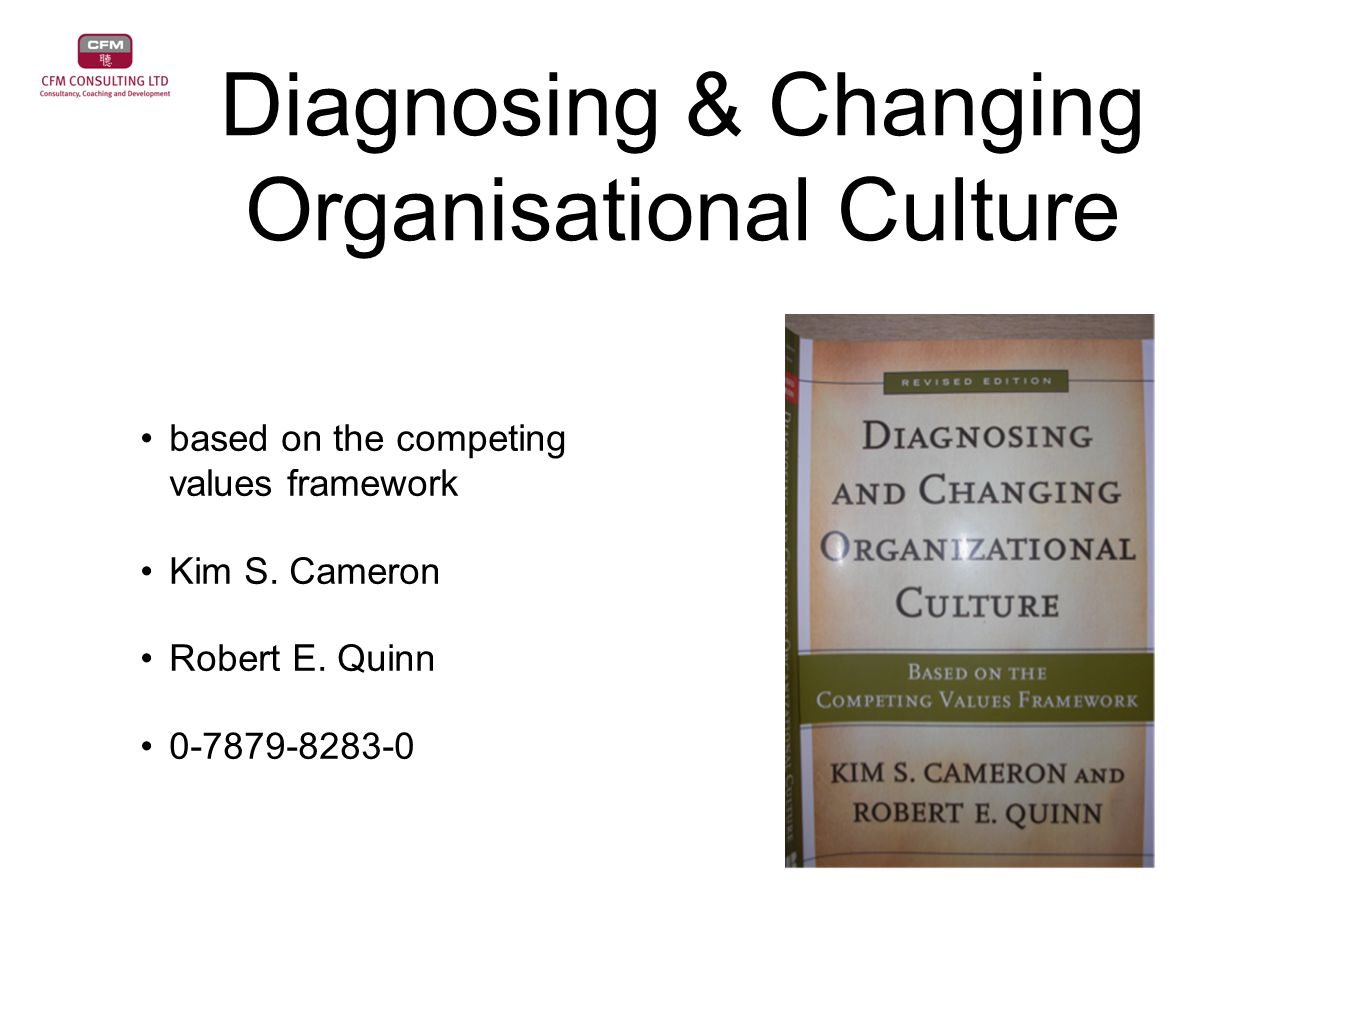 Diagnosing & Changing Organisational Culture based on the competing values framework Kim S. Cameron Robert E. Quinn 0-7879-8283-0